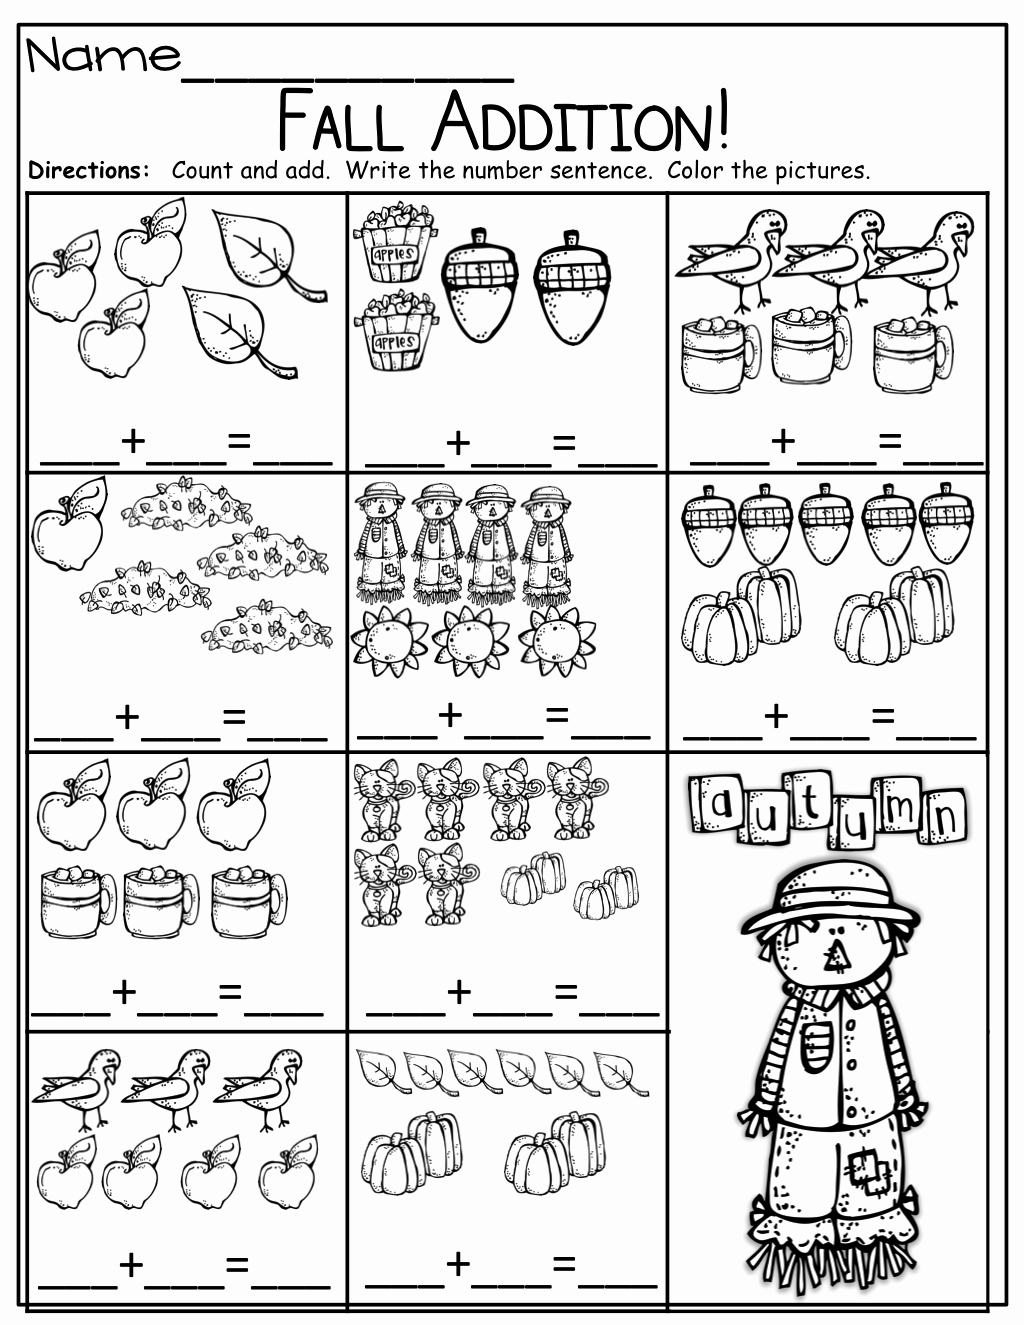 Simple Addition Worksheets for Kindergarten Lovely Simple Addition Sentences for Fall